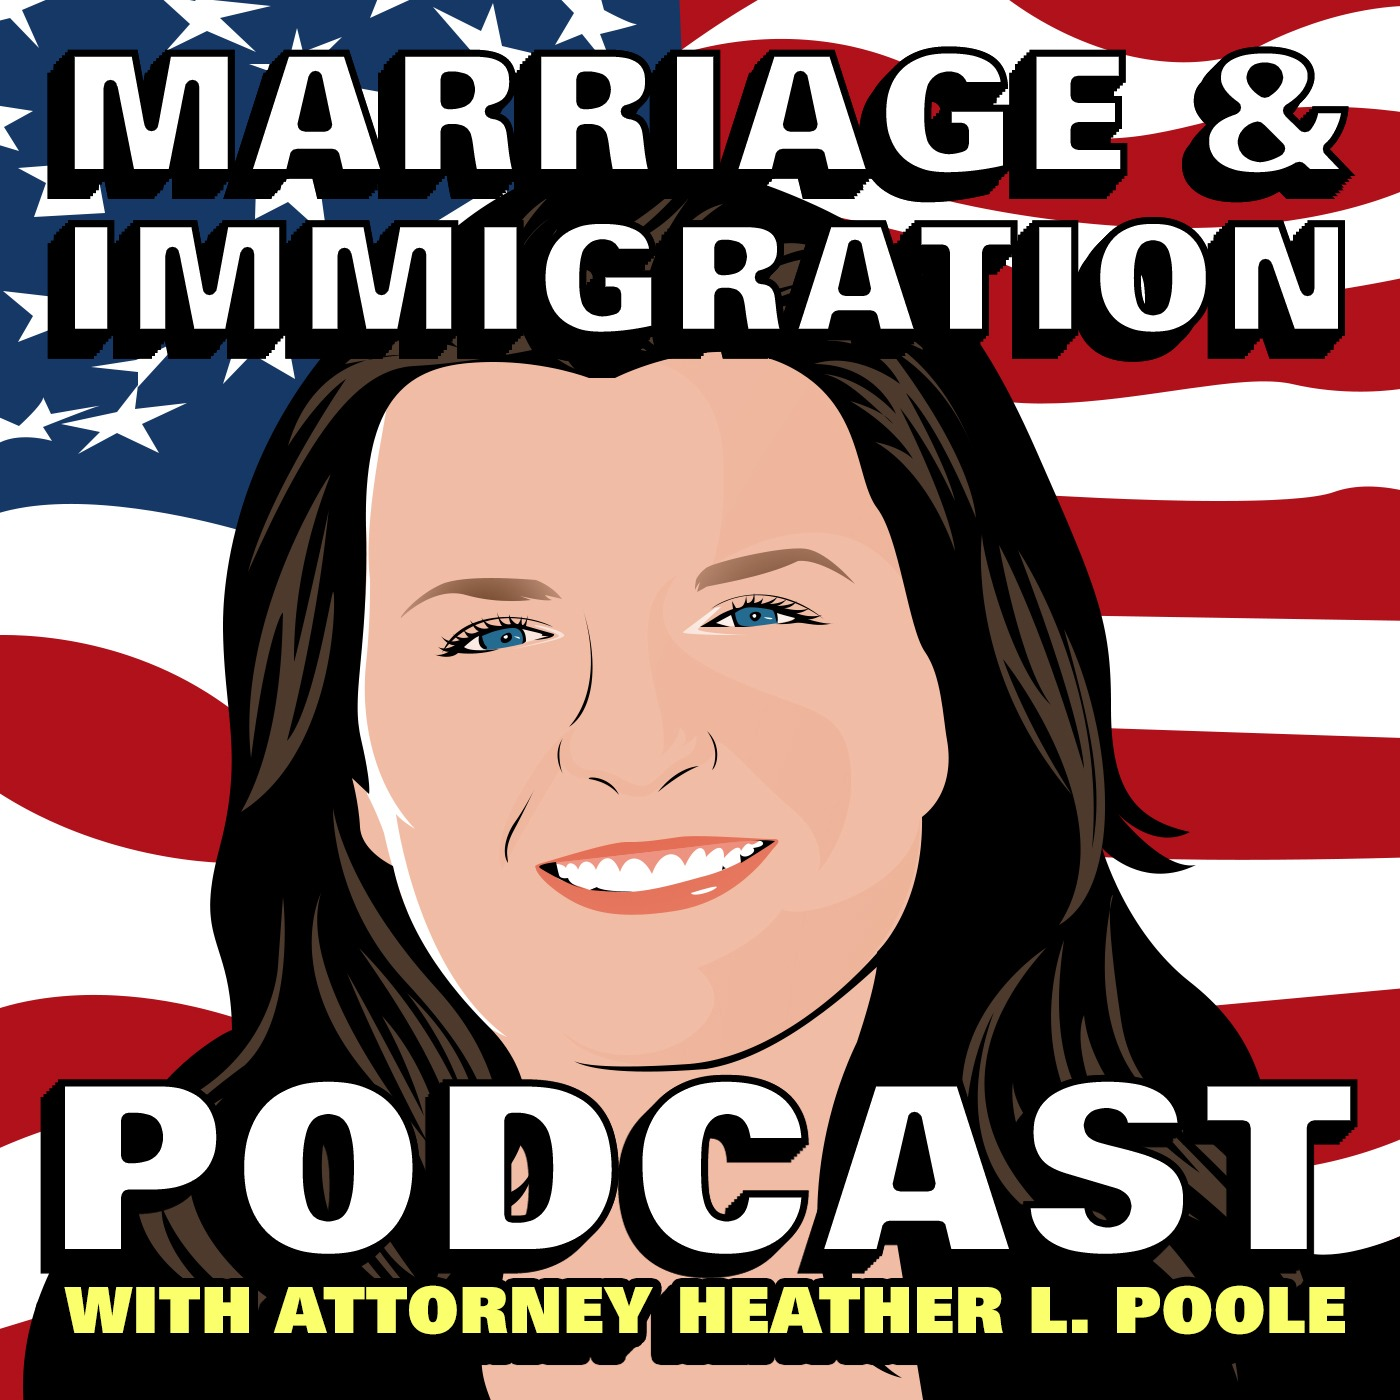 Marriage & Immigration Podcast